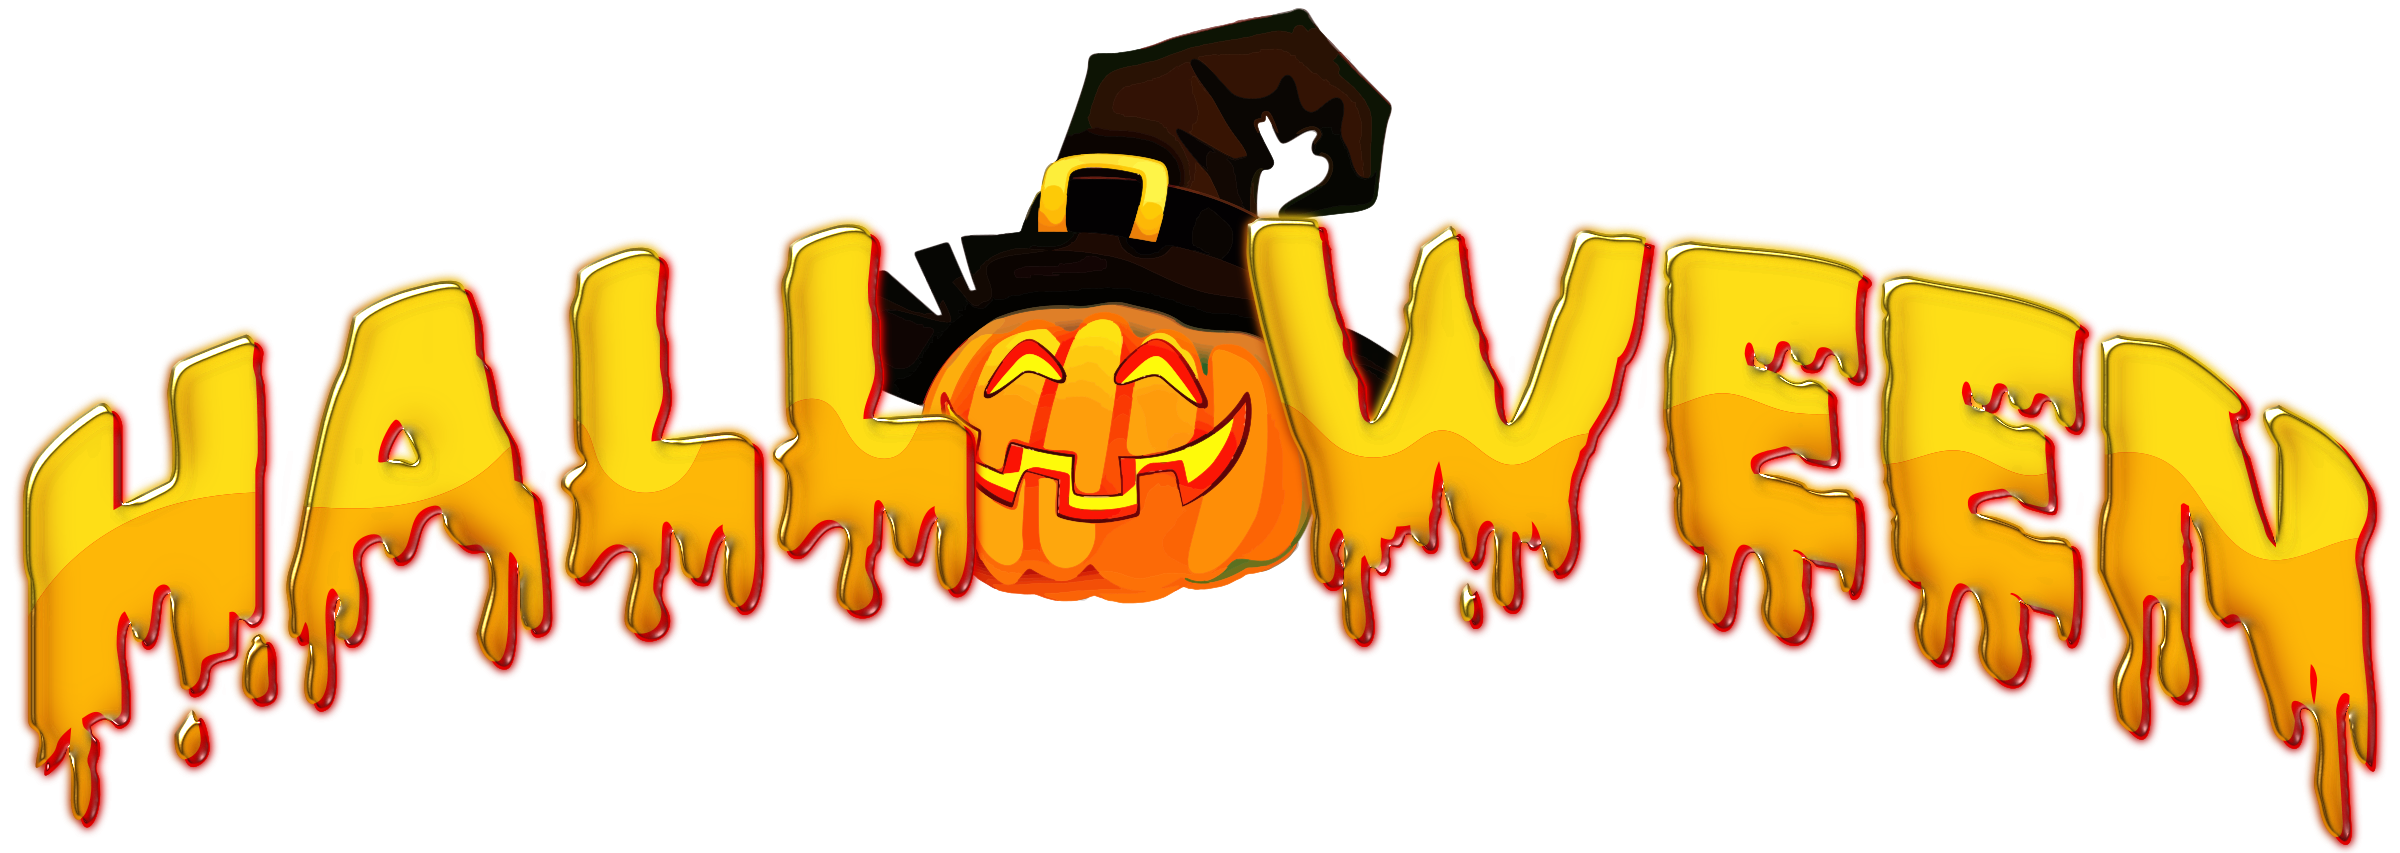 Halloween text png. Typography icons free and